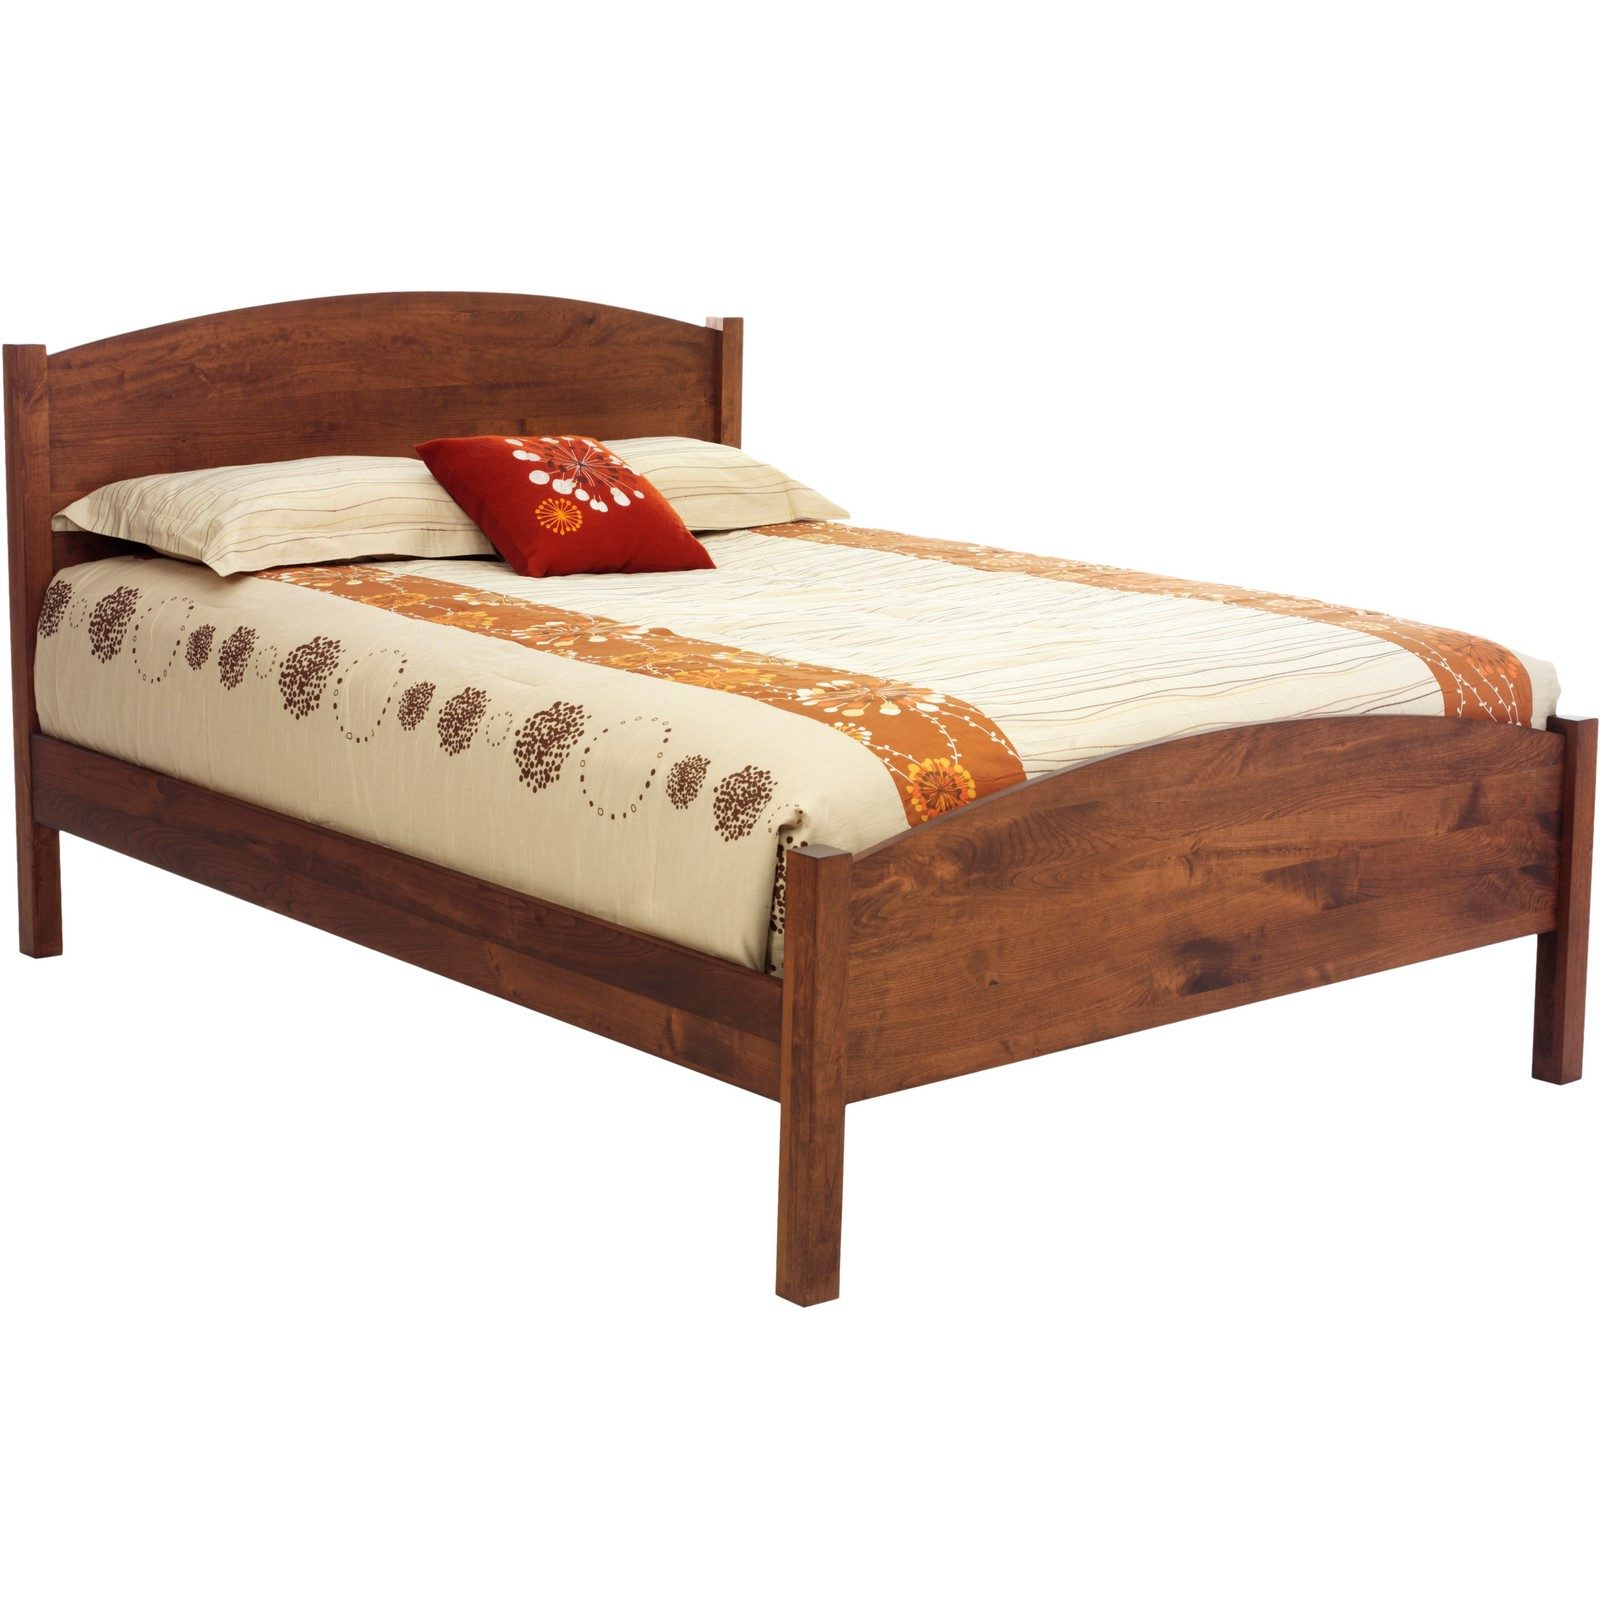 Millcraft lynnwood eclipse bed stewart roth furniture for Furniture in lynnwood